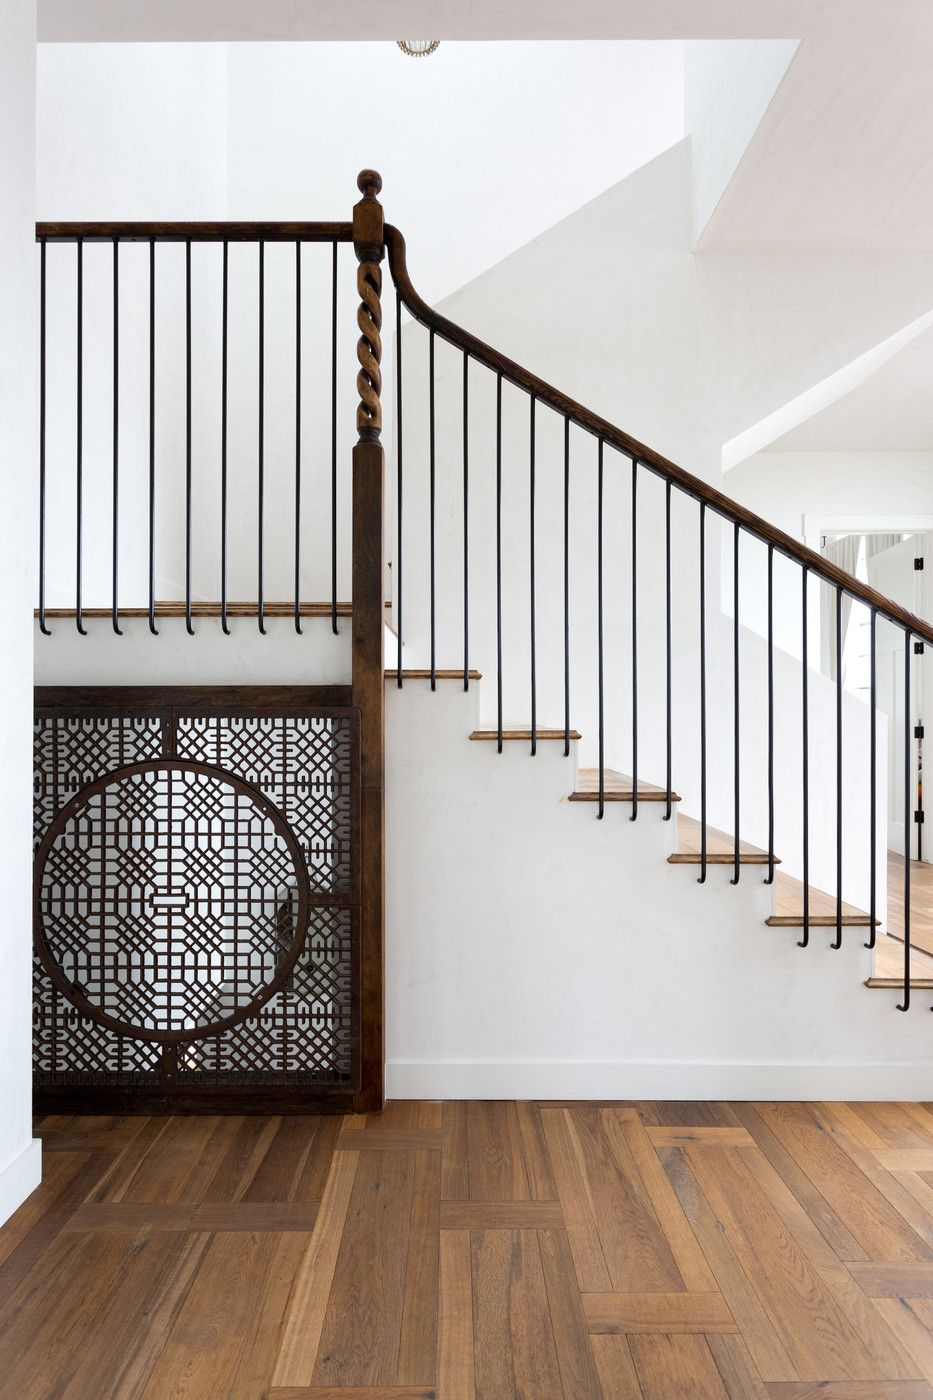 Stairs Photos   Spanish colonial decor, Stairs, Staircase